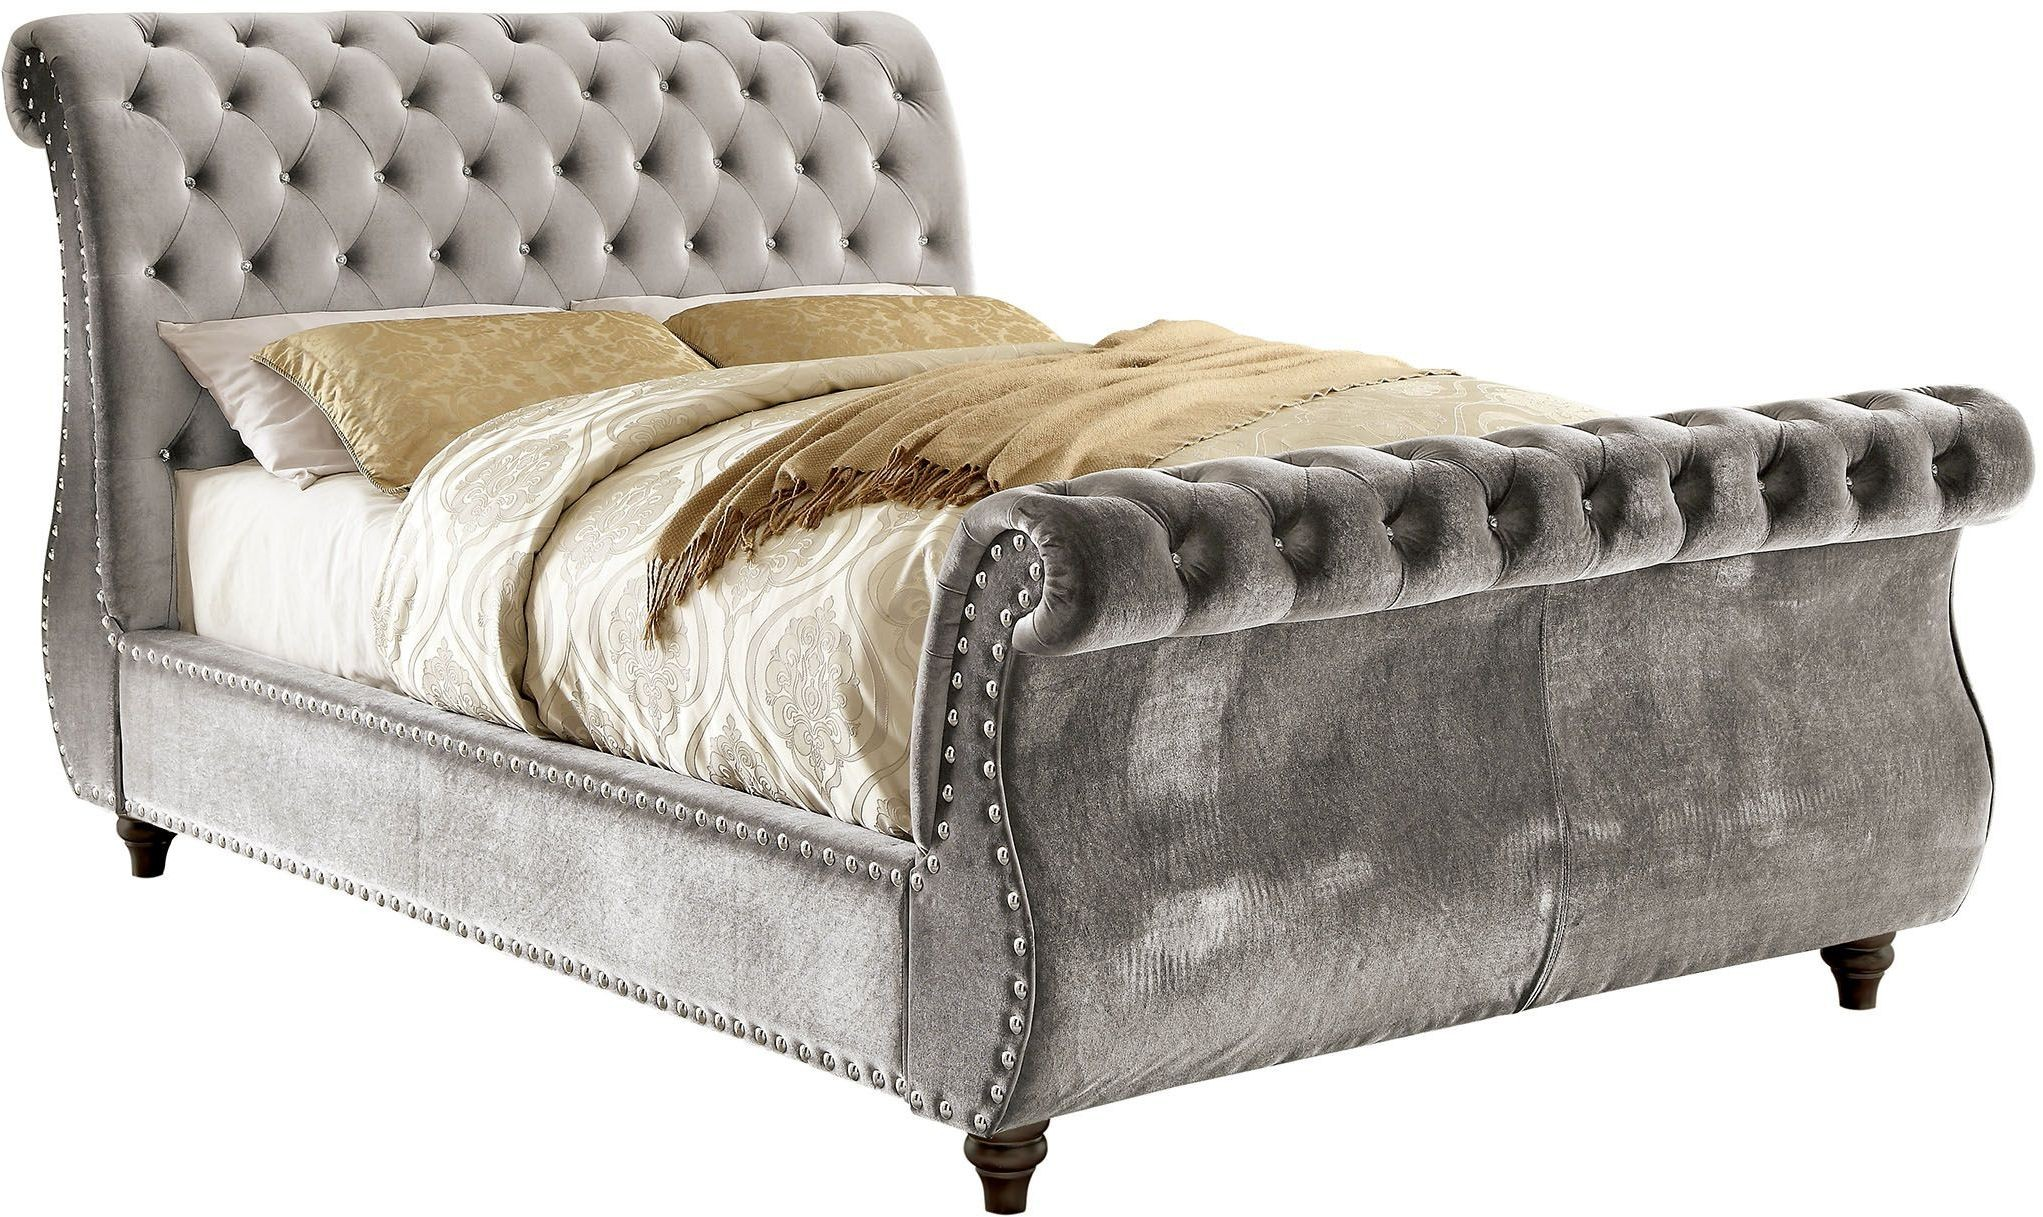 - Noella Gray King Upholstered Sleigh Bed - 1StopBedrooms.